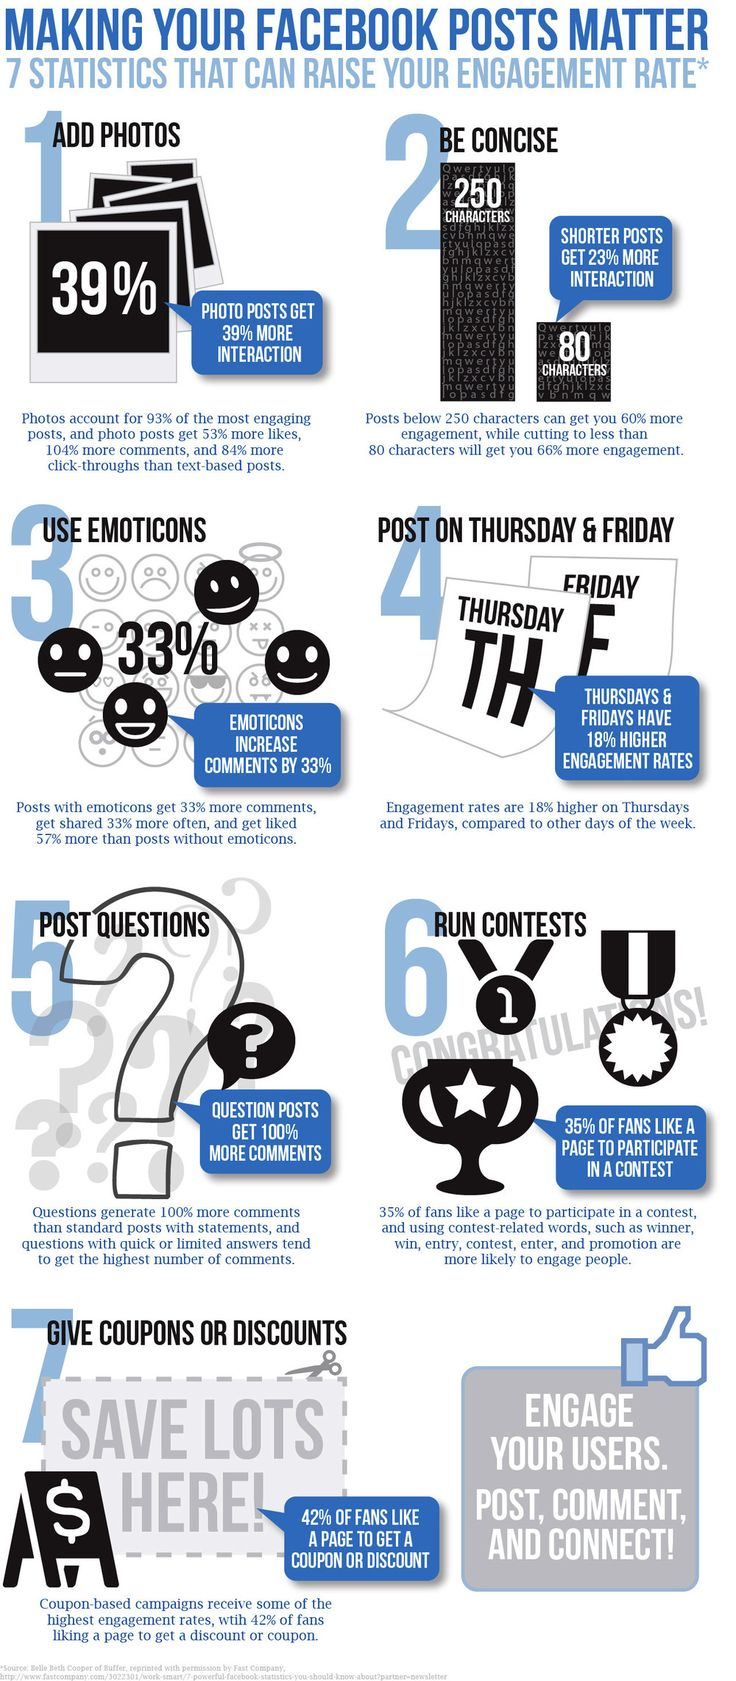 7 Statistics That Can Raise Your #Facebook Engagement Rate #socialmedia #infographic' lolsmg.com